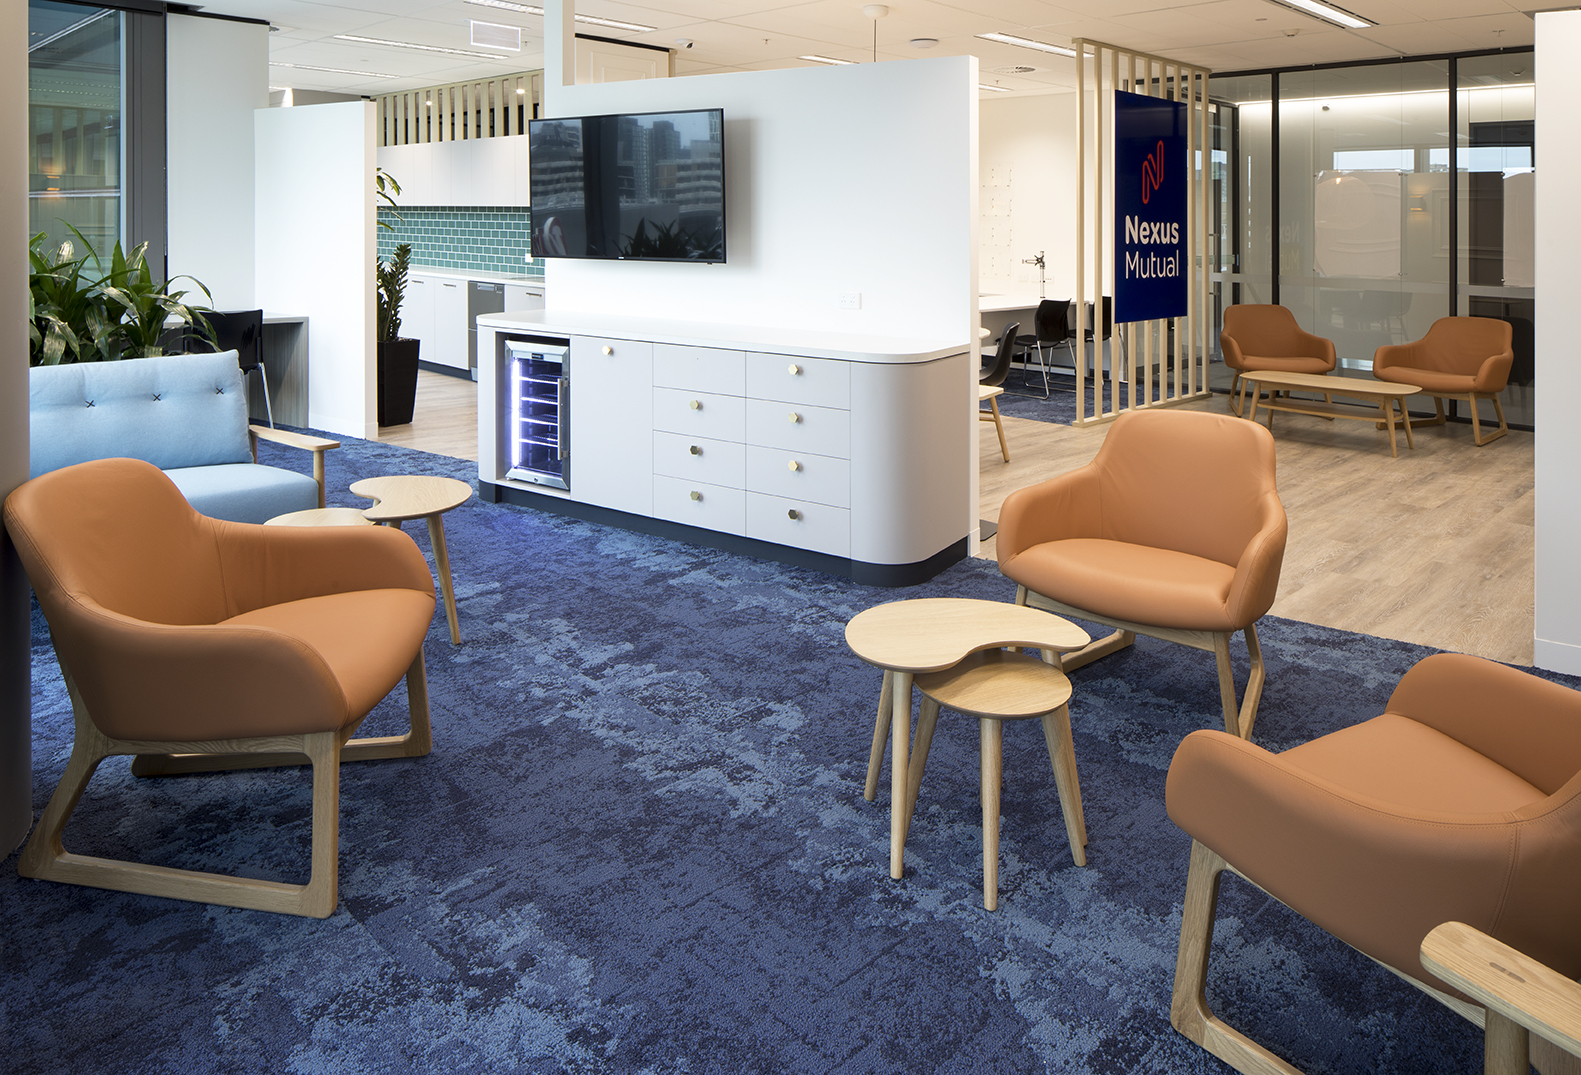 The members lounge at Nexus Mutual